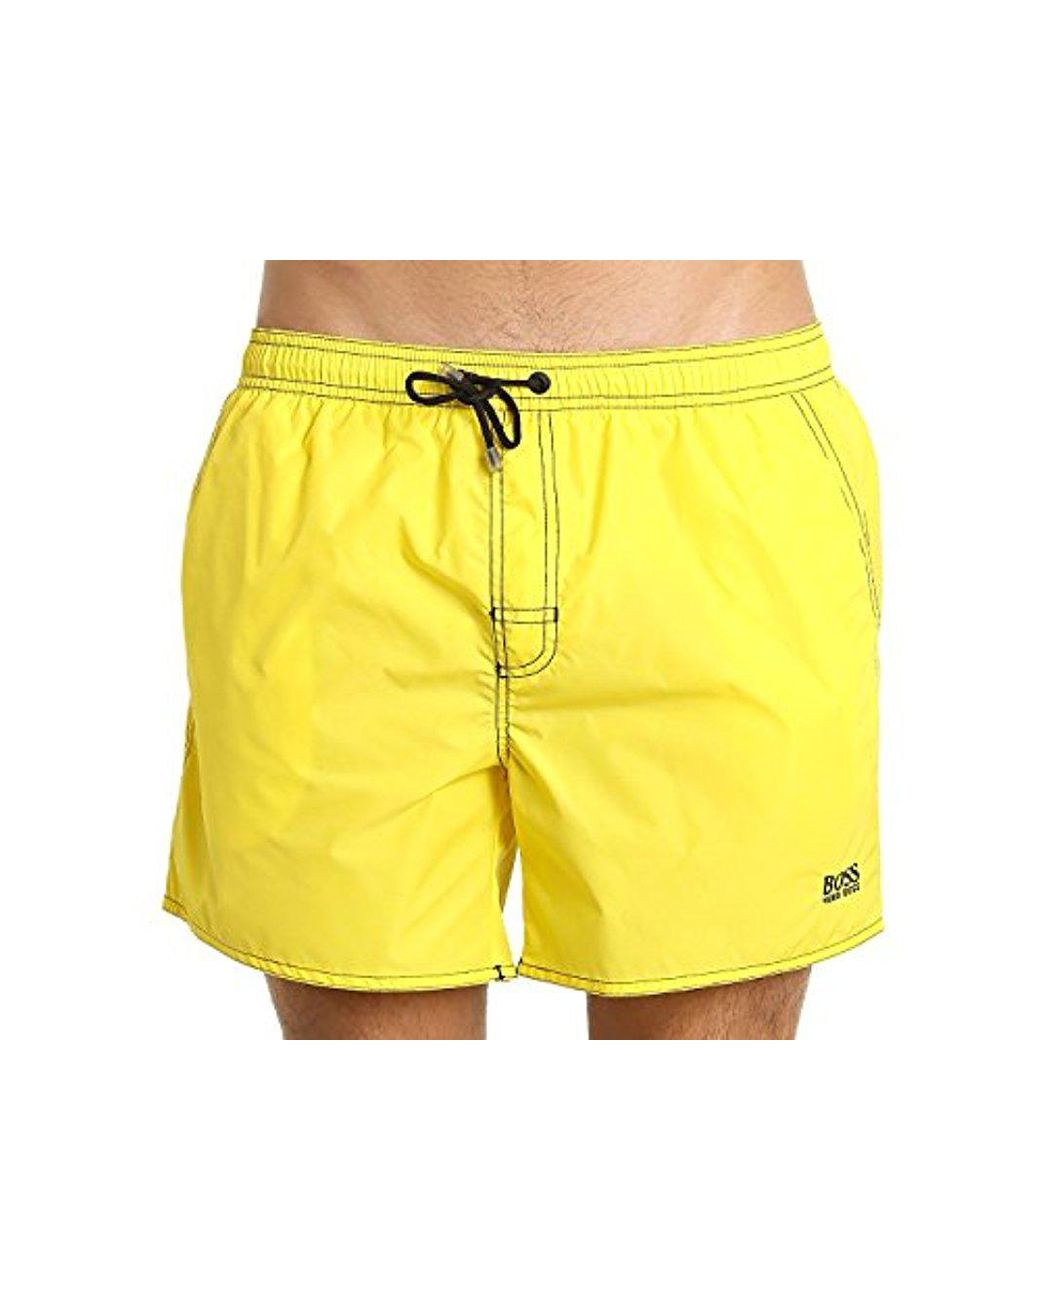 e587f24ccdd2b BOSS Lobster 5 Inch Solid Swim Trunk in Yellow for Men - Lyst